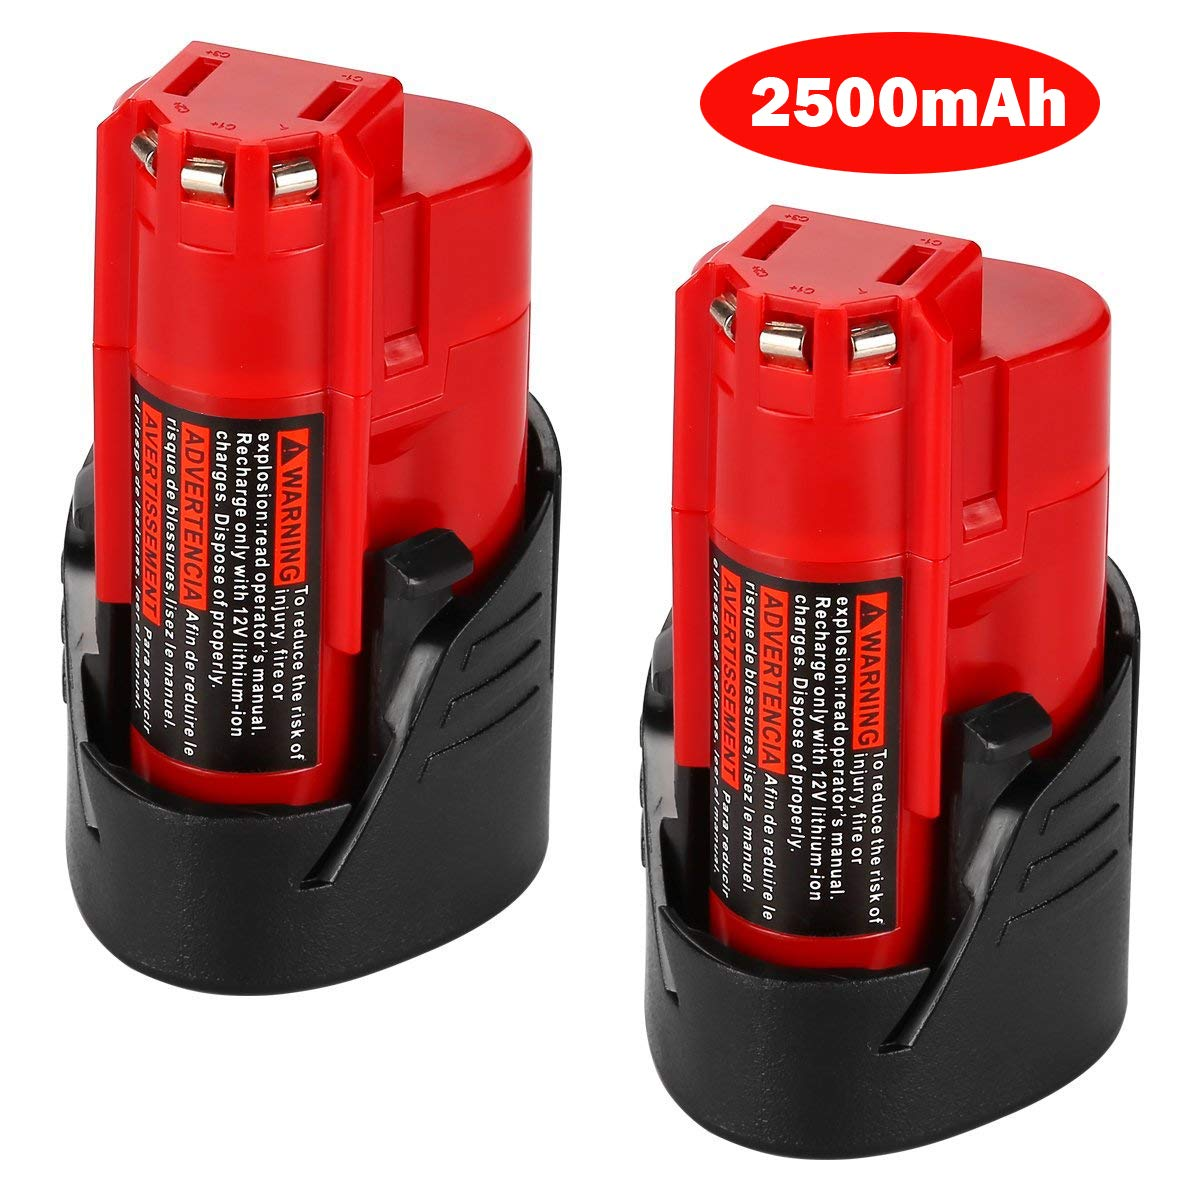 Keepower M12 Battery 2 Pack 12V 2500mAh Lithium-ion Replacement Battery for Milwaukee M12 Milwaukee 48-11-2411 REDLITHIUM 12-Volt Cordless Milwaukee Tools Milwaukee 12V Battery Lithium-ion by Keepower (Image #1)